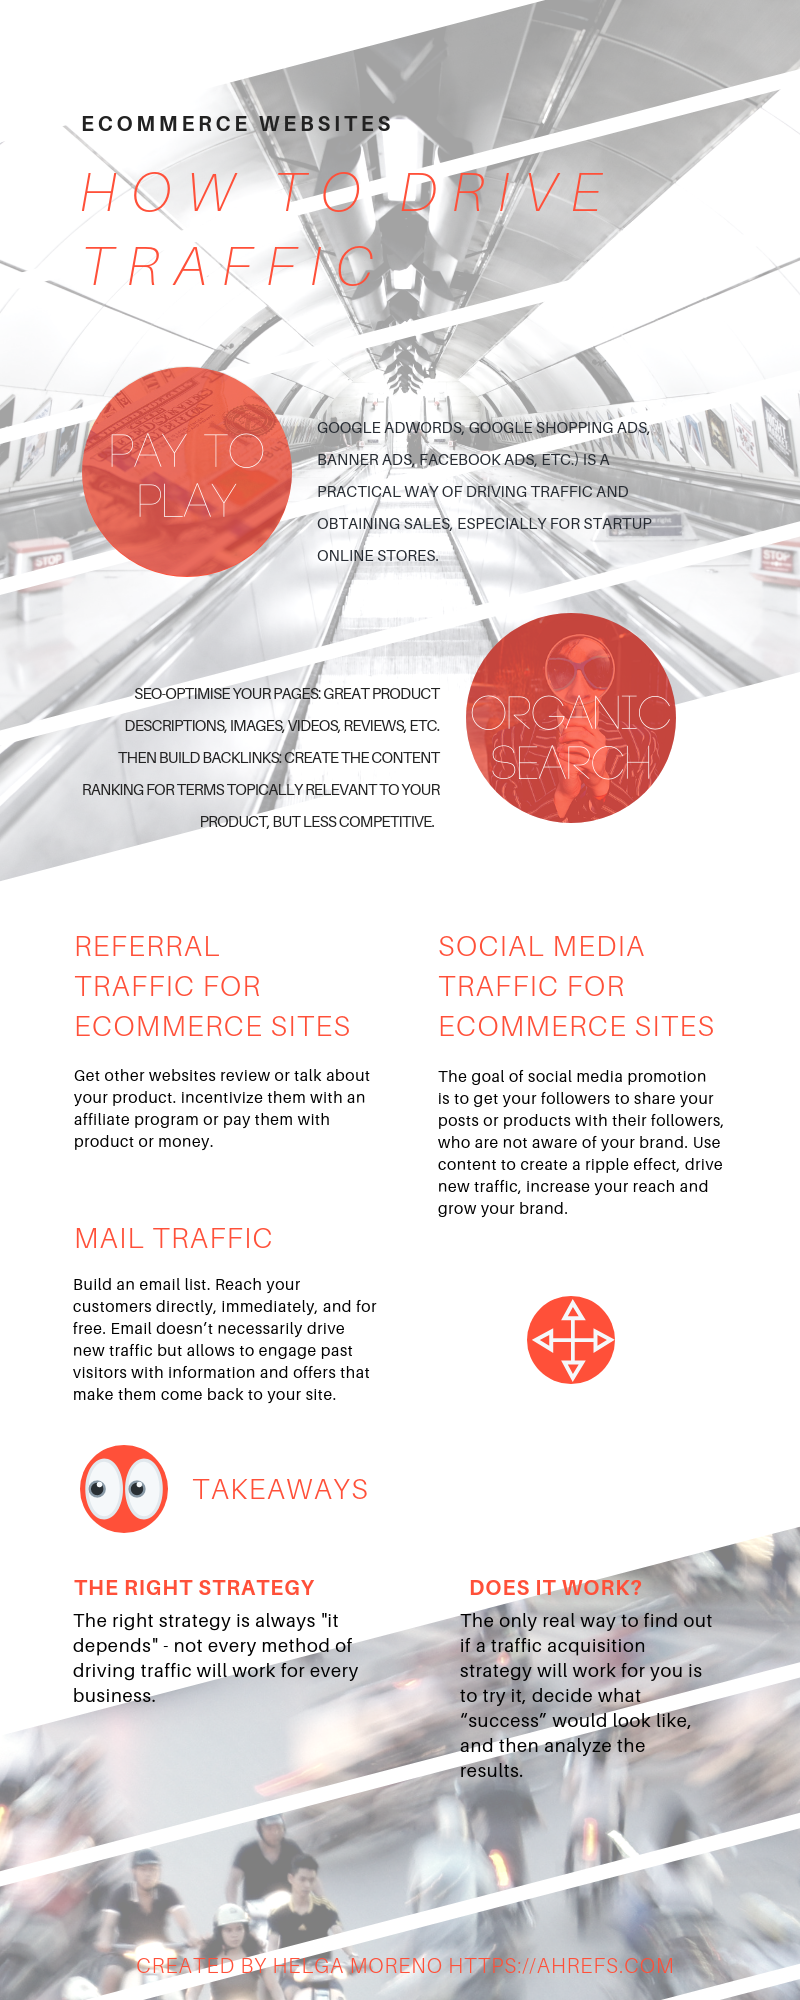 Efficient Ways To Drive Traffic To Your Ecommerce Website